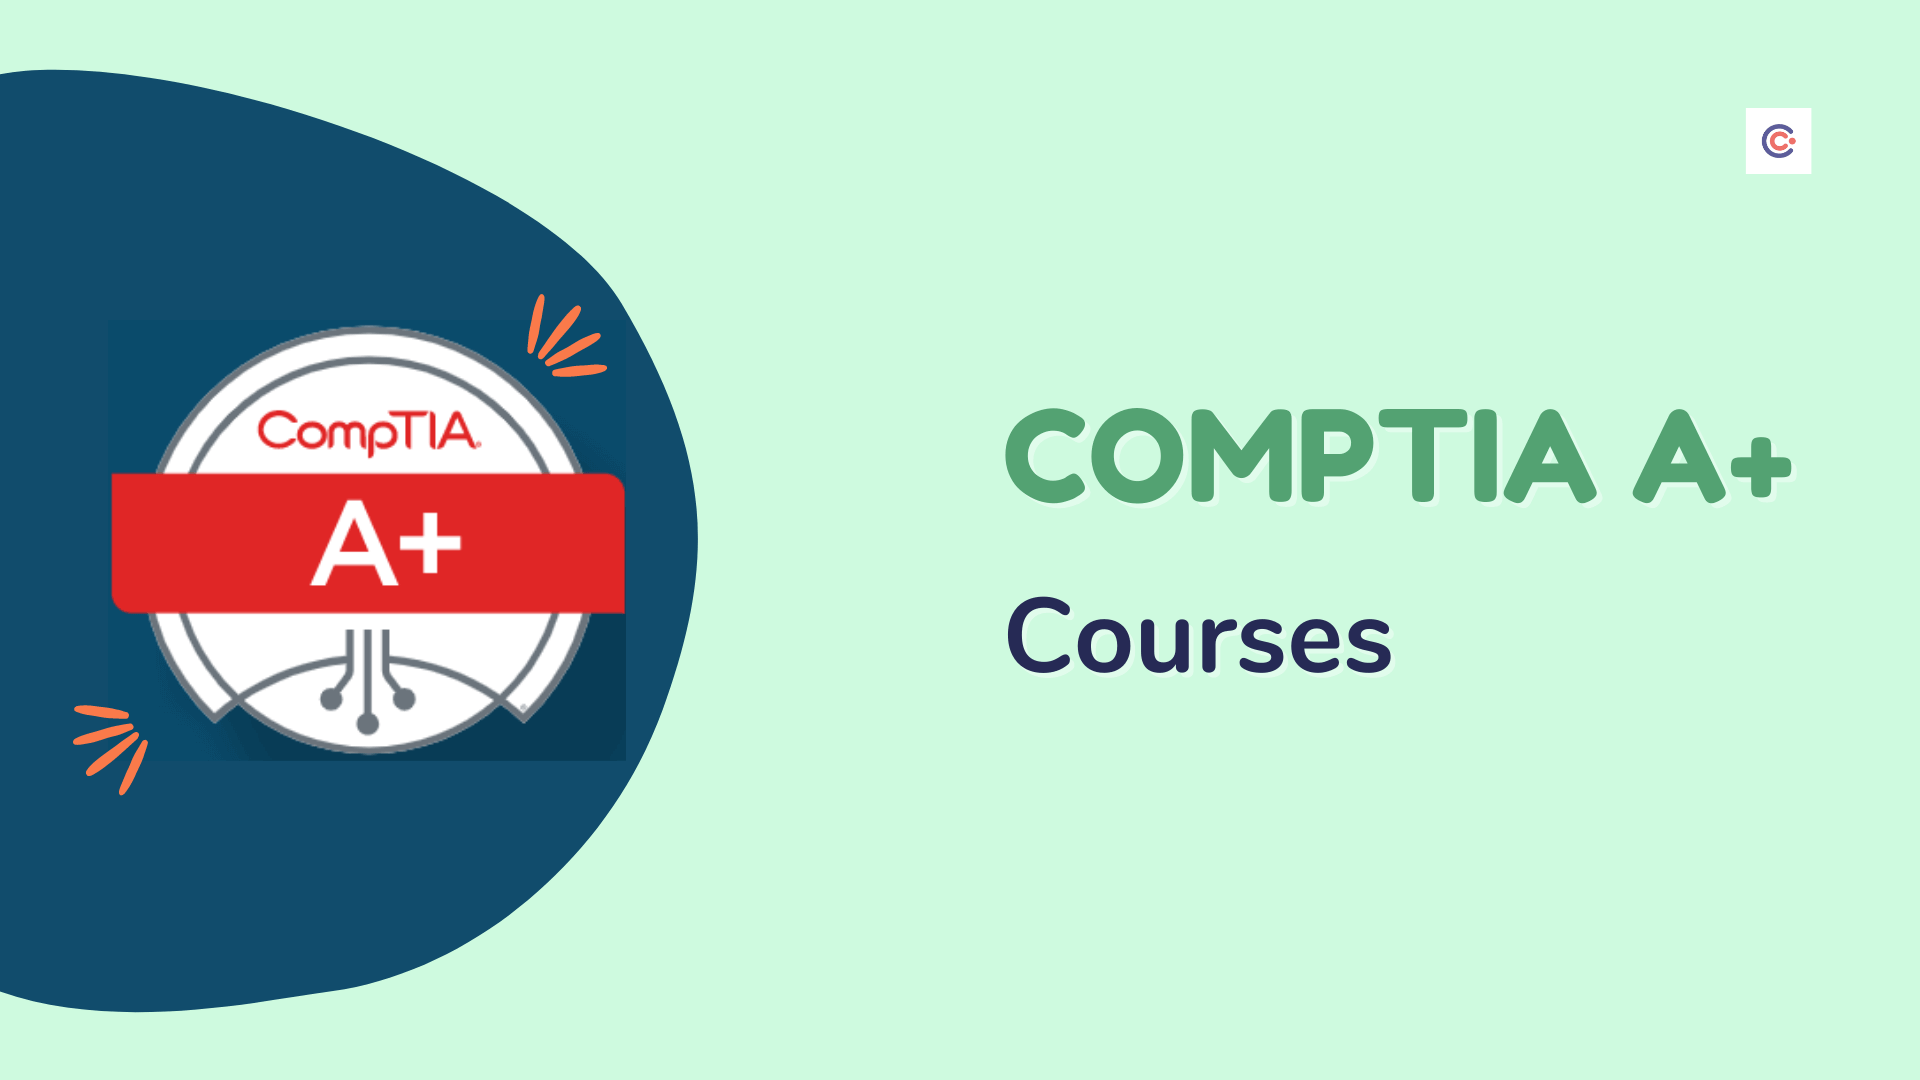 8 Best CompTIA A+ Courses - Learn CompTIA A+ Online